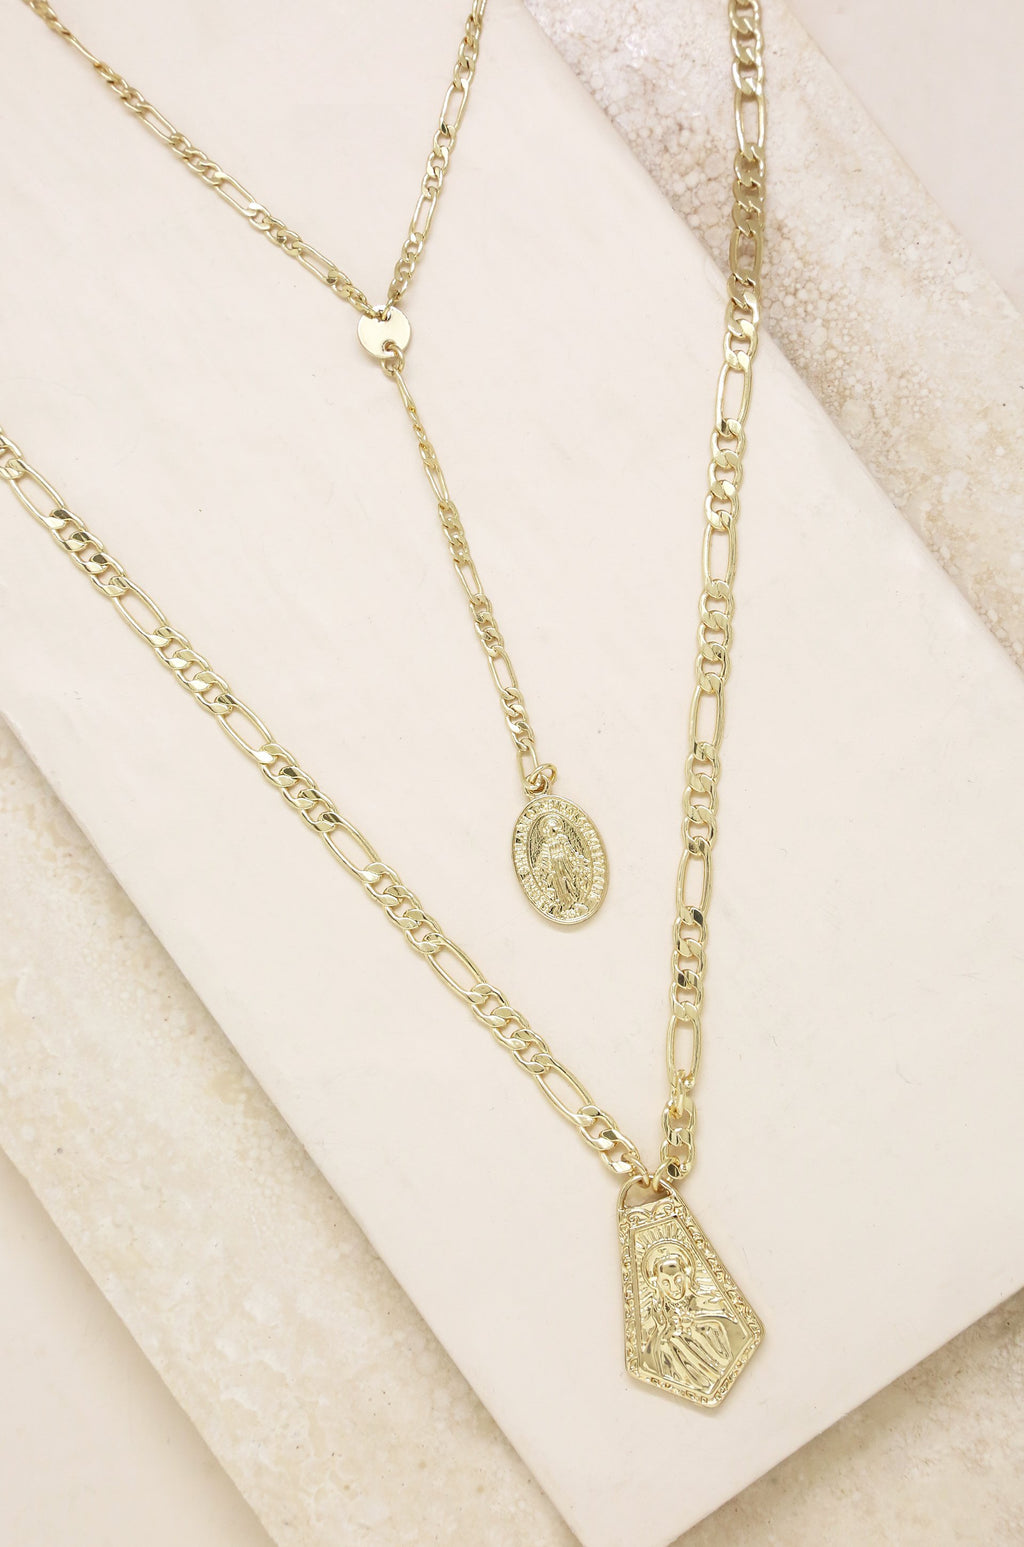 2pc 'Ancient Feelings' Layered 18kt Gold Necklace